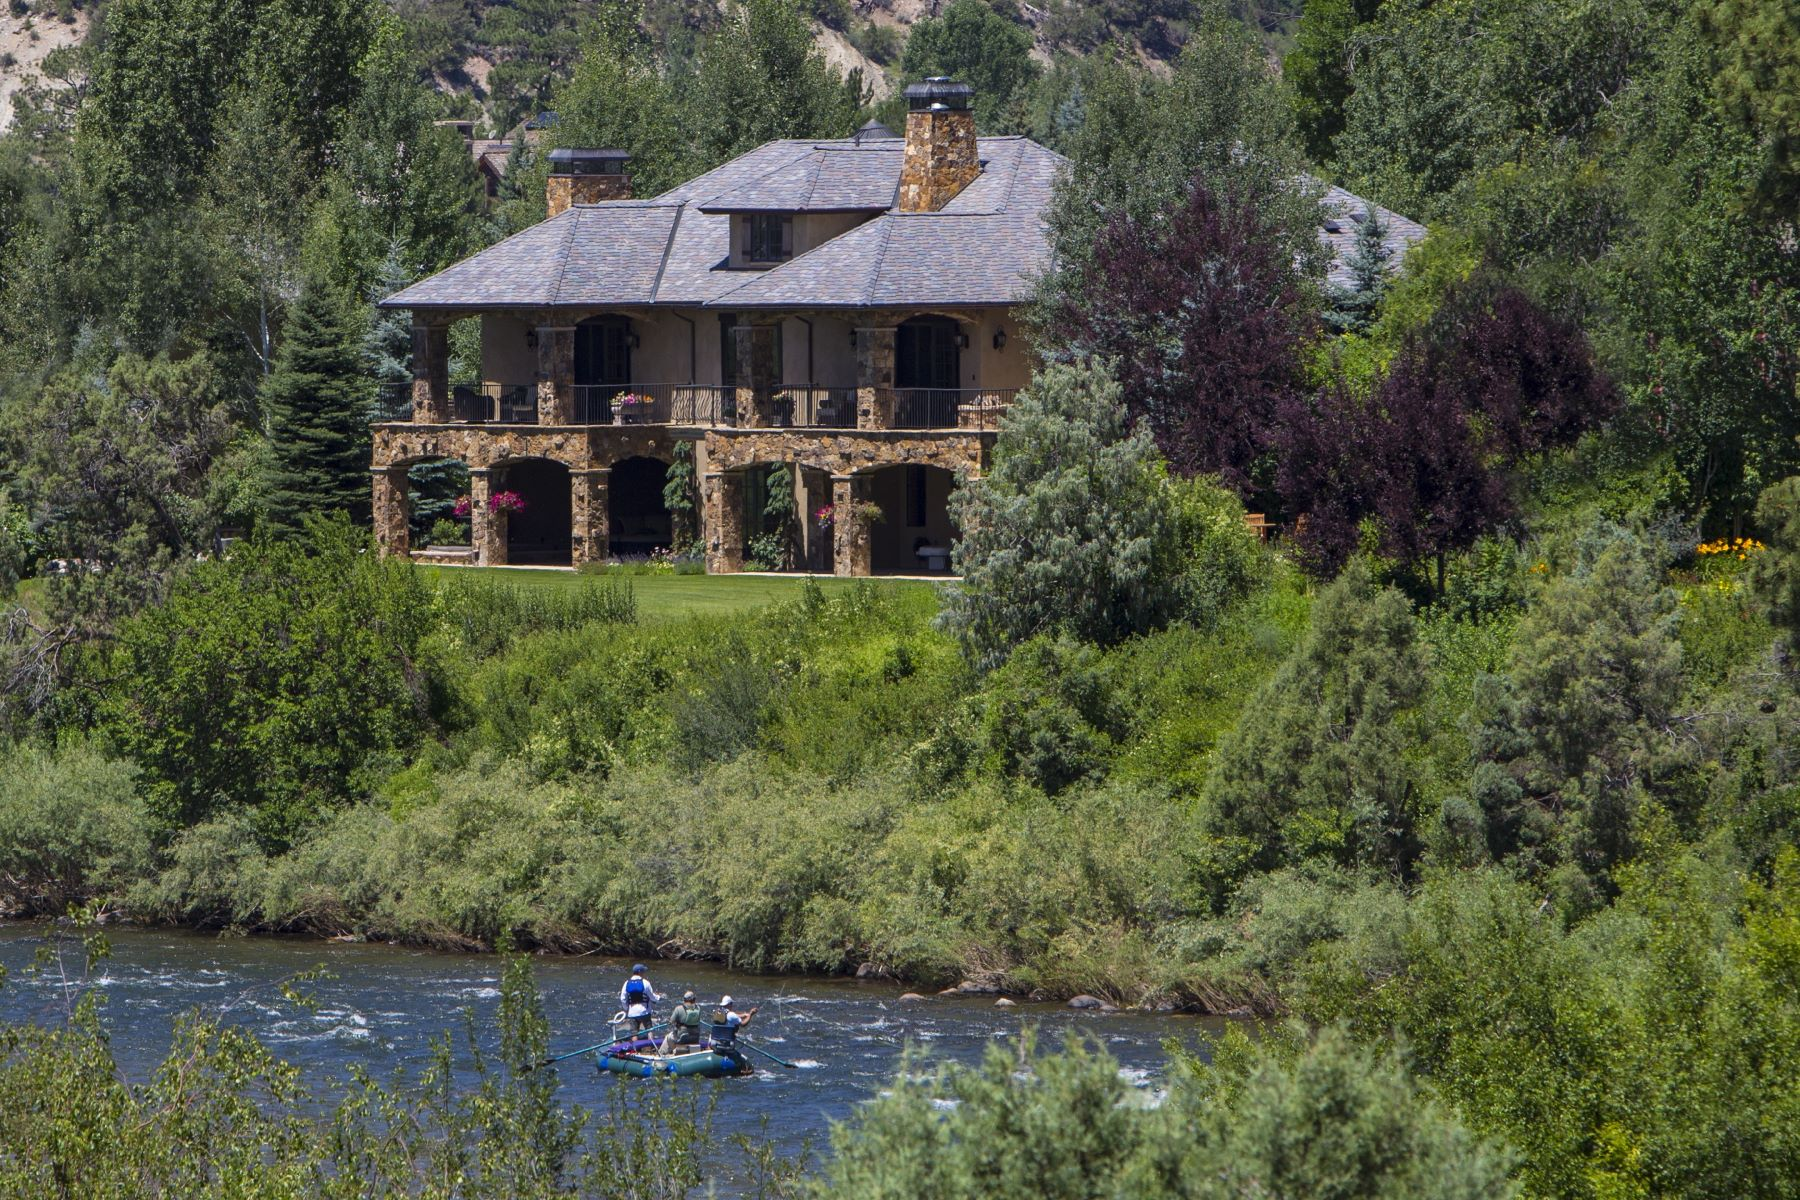 Maison unifamiliale pour l Vente à Riverfront Italian Country Home 80 Alpen Glo Lane Carbondale, Colorado, 81623 États-Unis